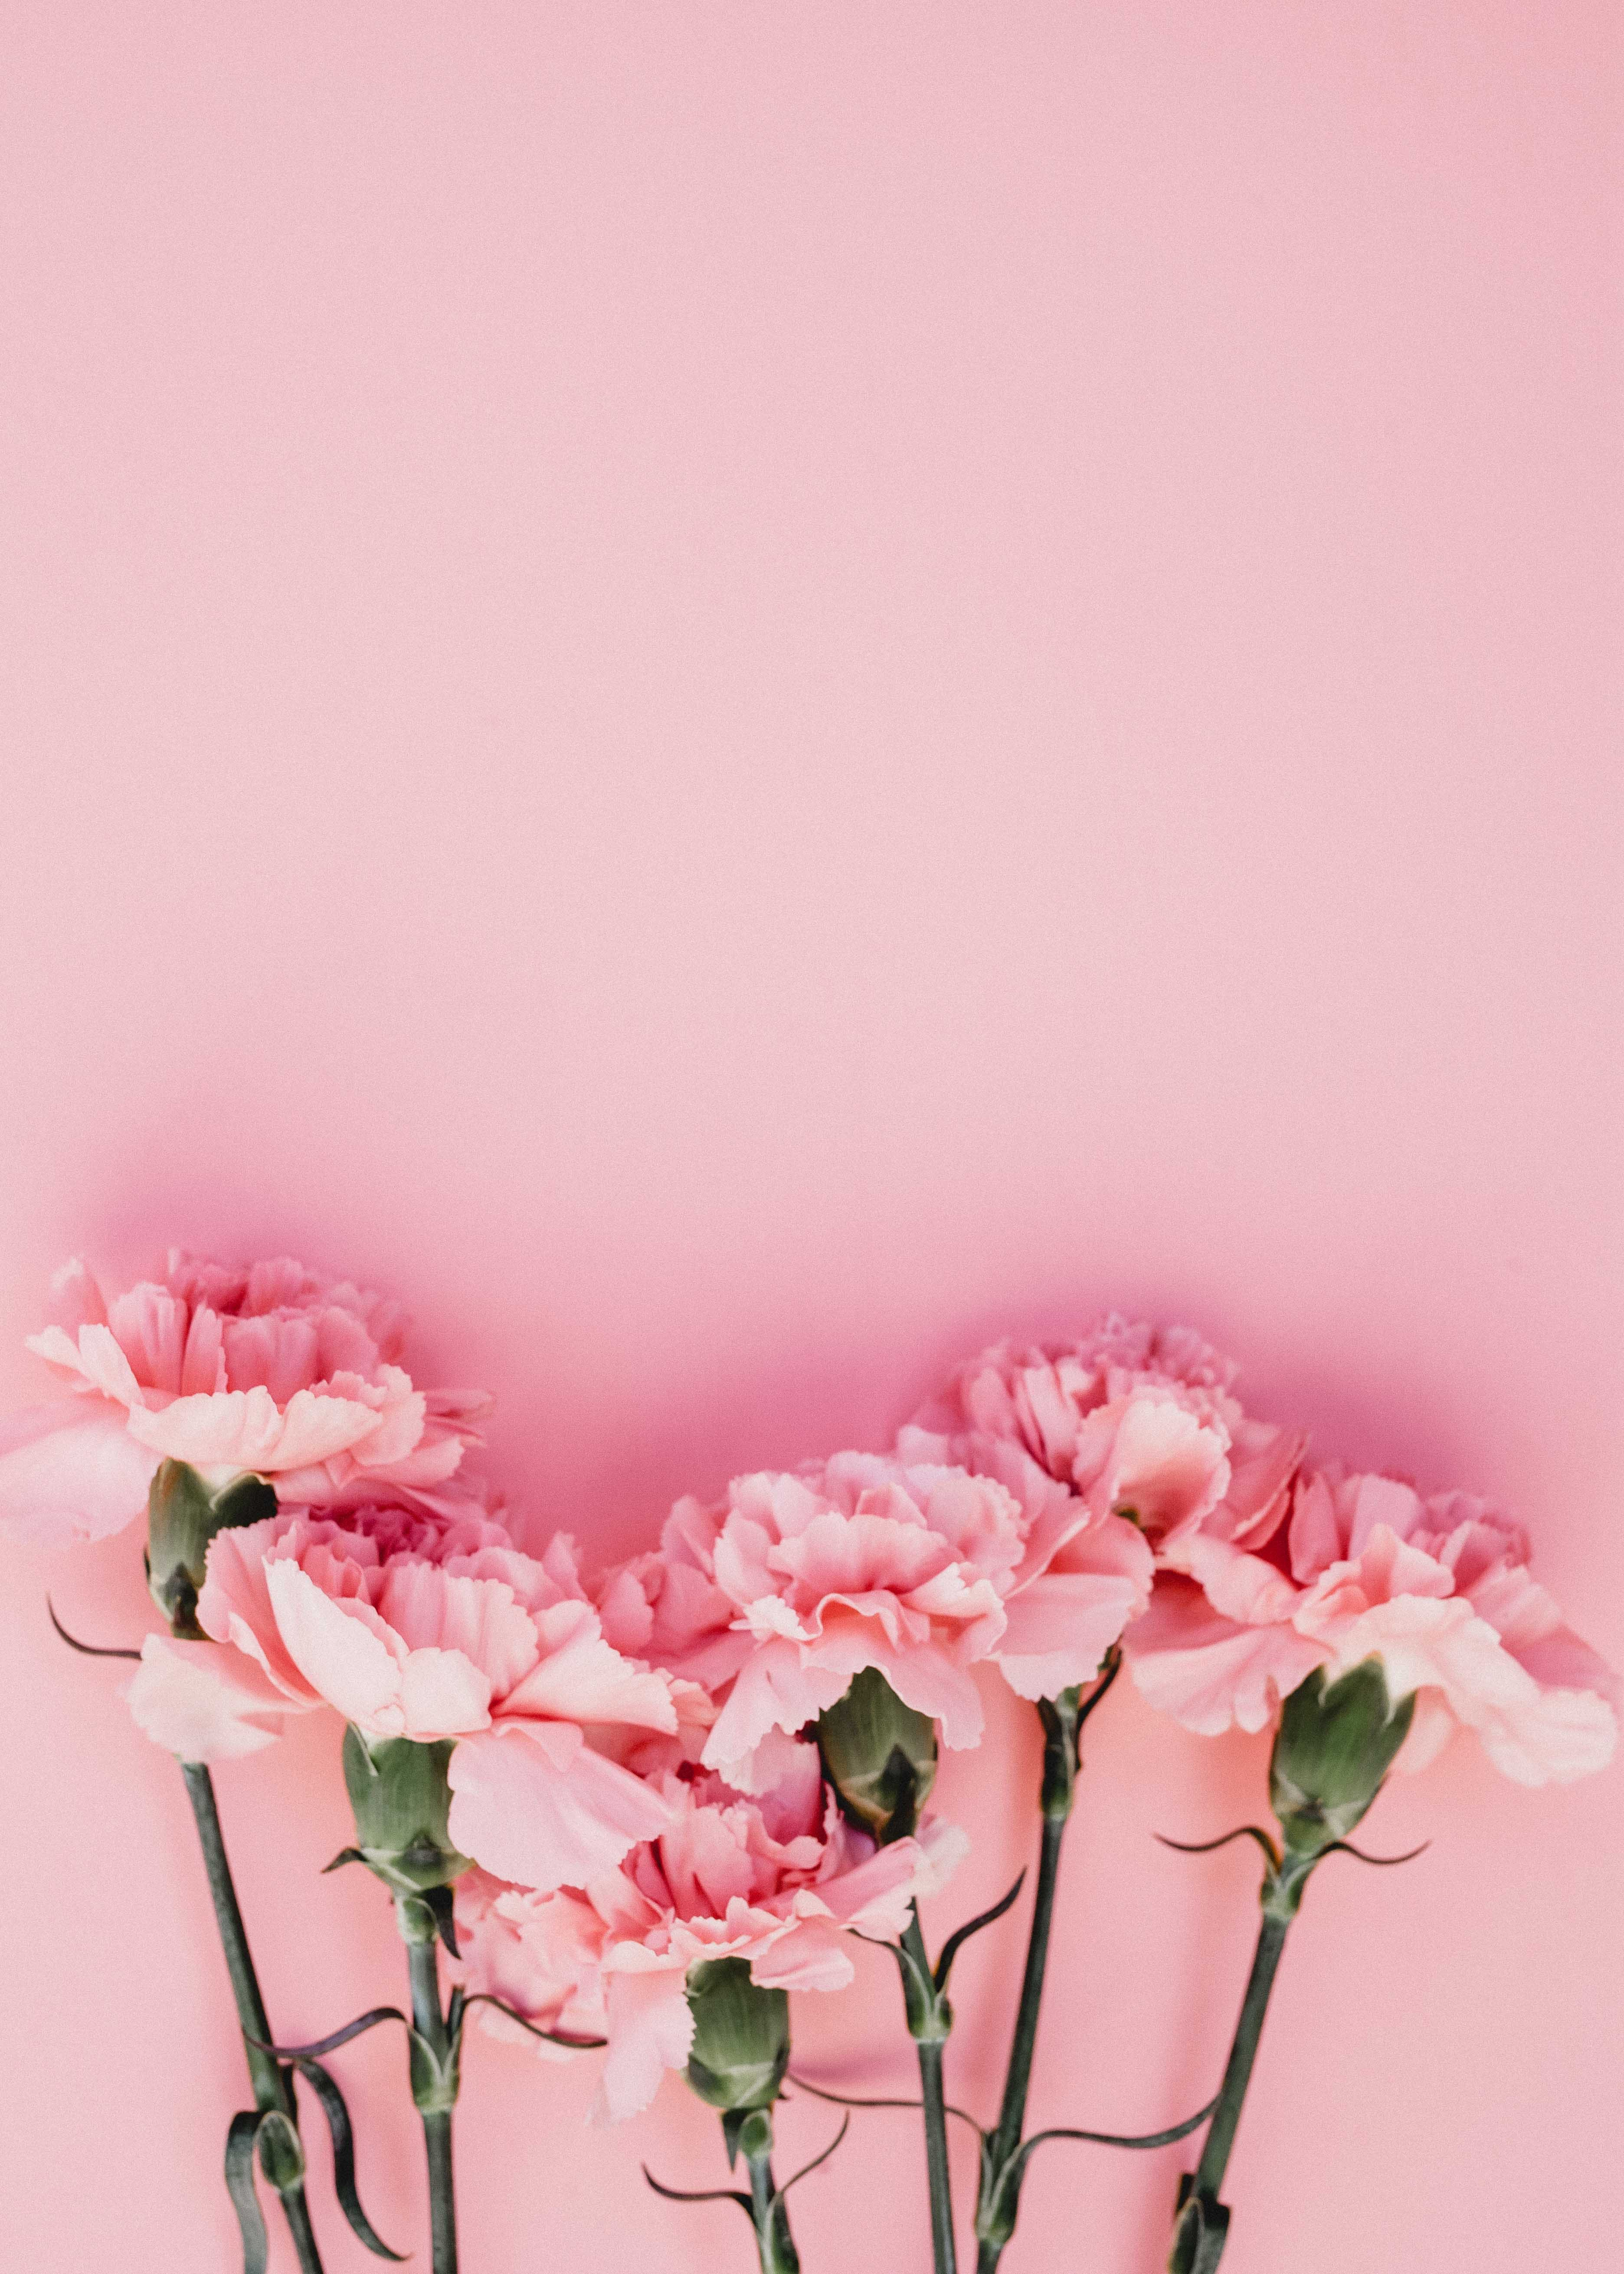 Pink flowers with pink background.